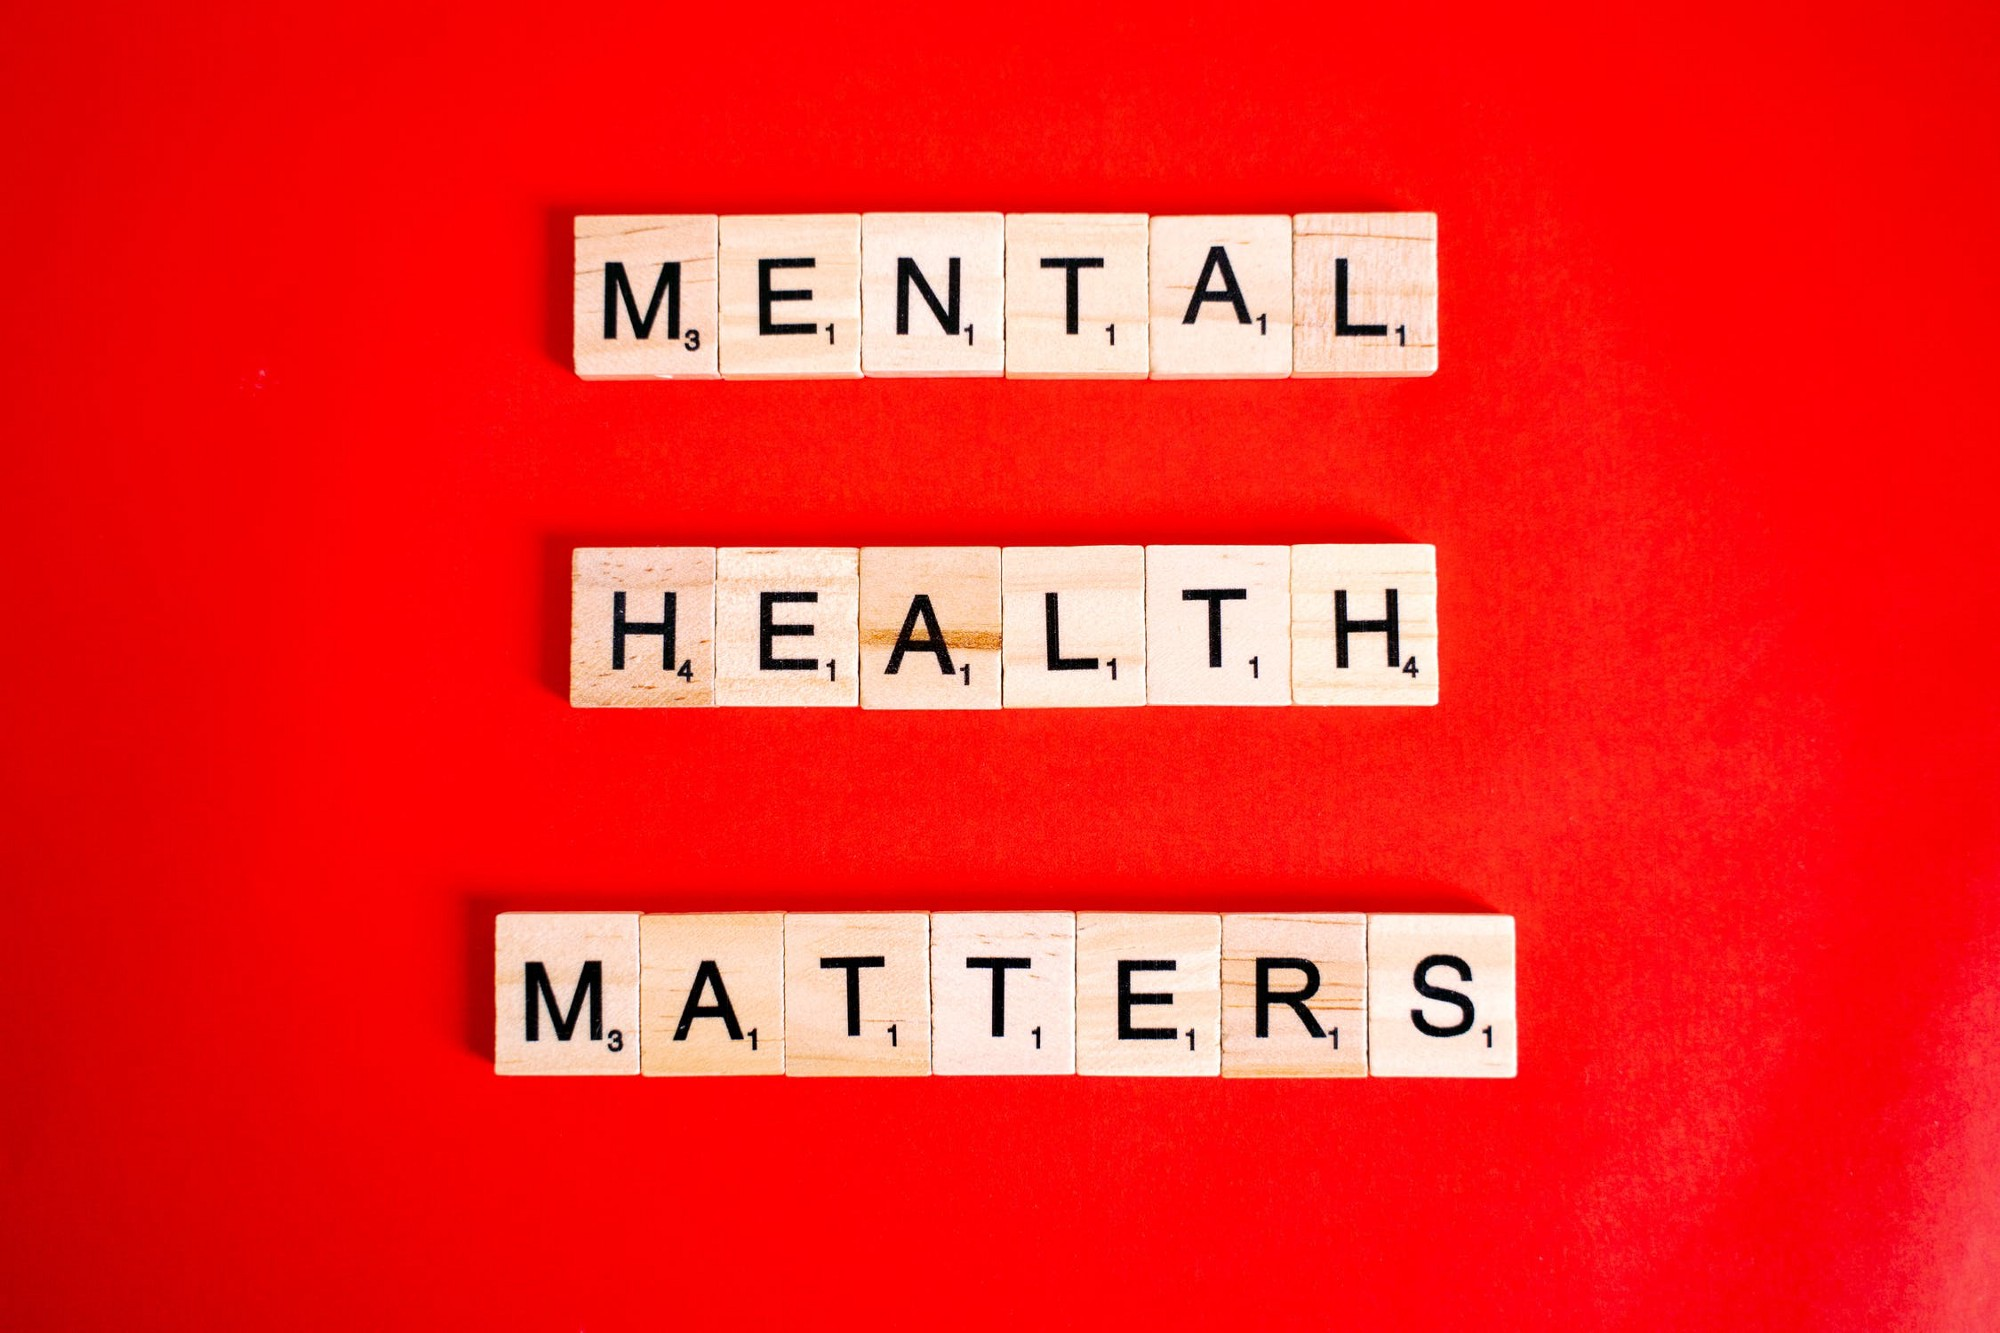 mental health matters written out in scrabble tiles against red background